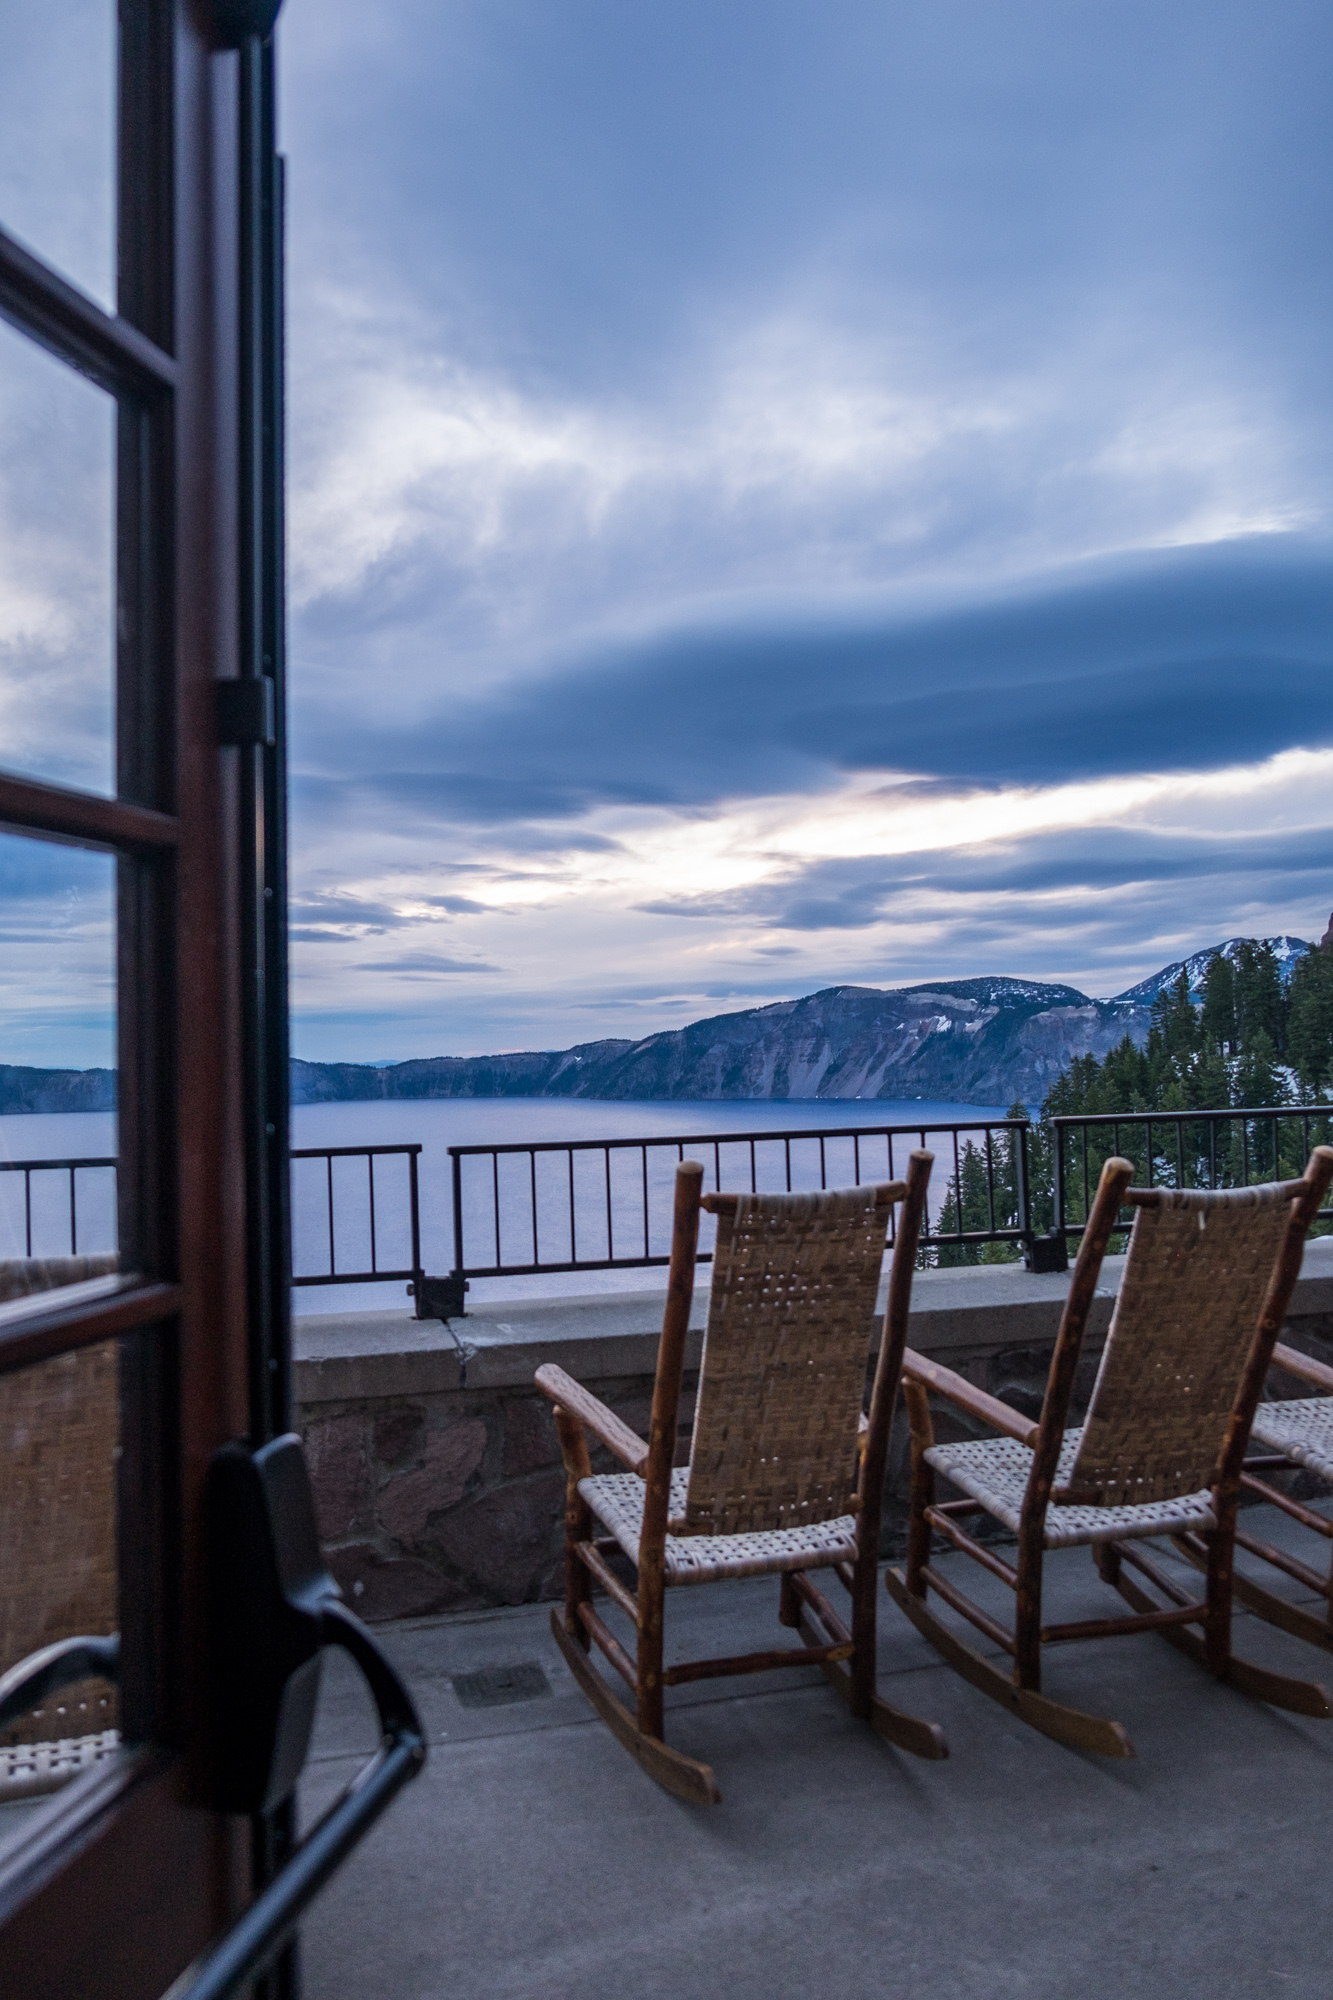 The back porch is the best place to check out the lake while sipping on a drink.